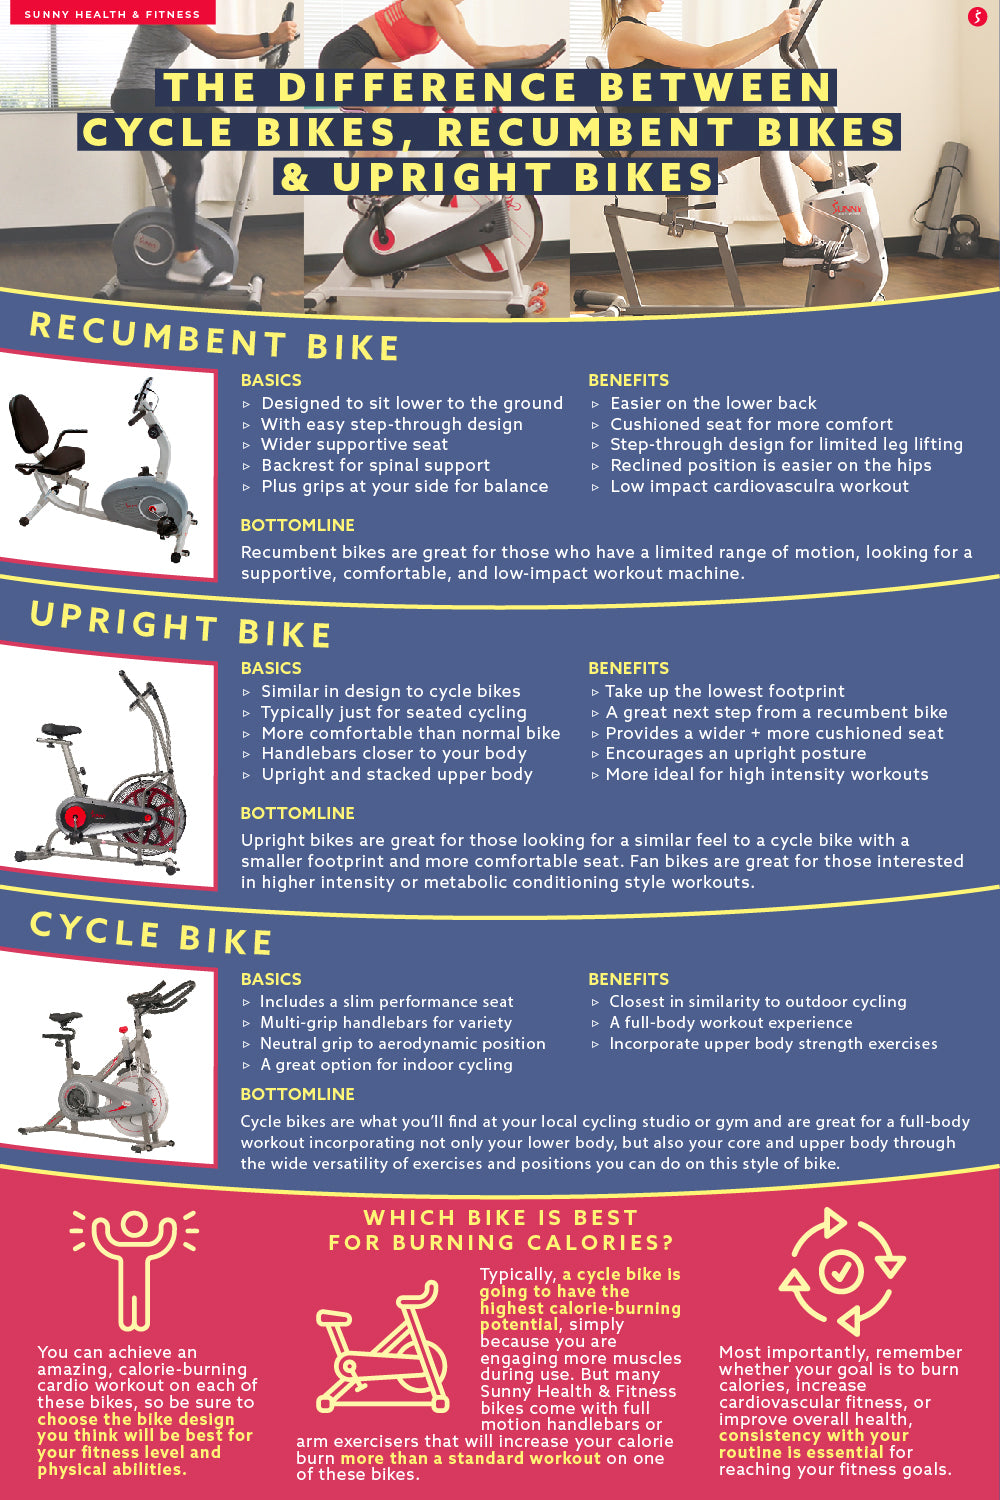 The Difference Between Cycle Bikes, Recumbent Bikes & Upright Bikes Infographic